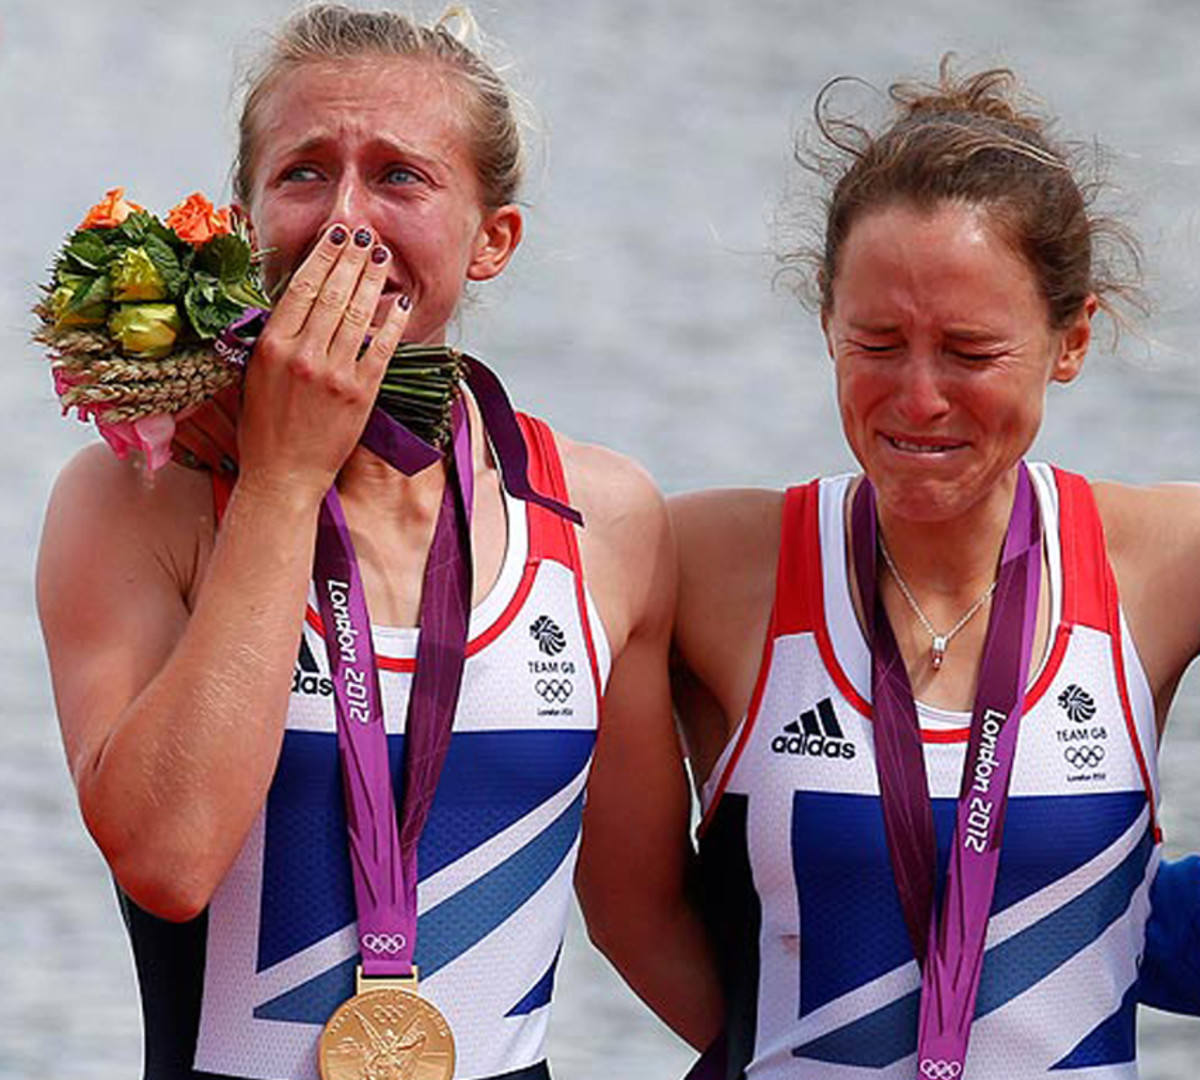 Britain's Katherine Copeland and Sophie Hosking in floods of tears after winning Gold in the lightweight double sculls